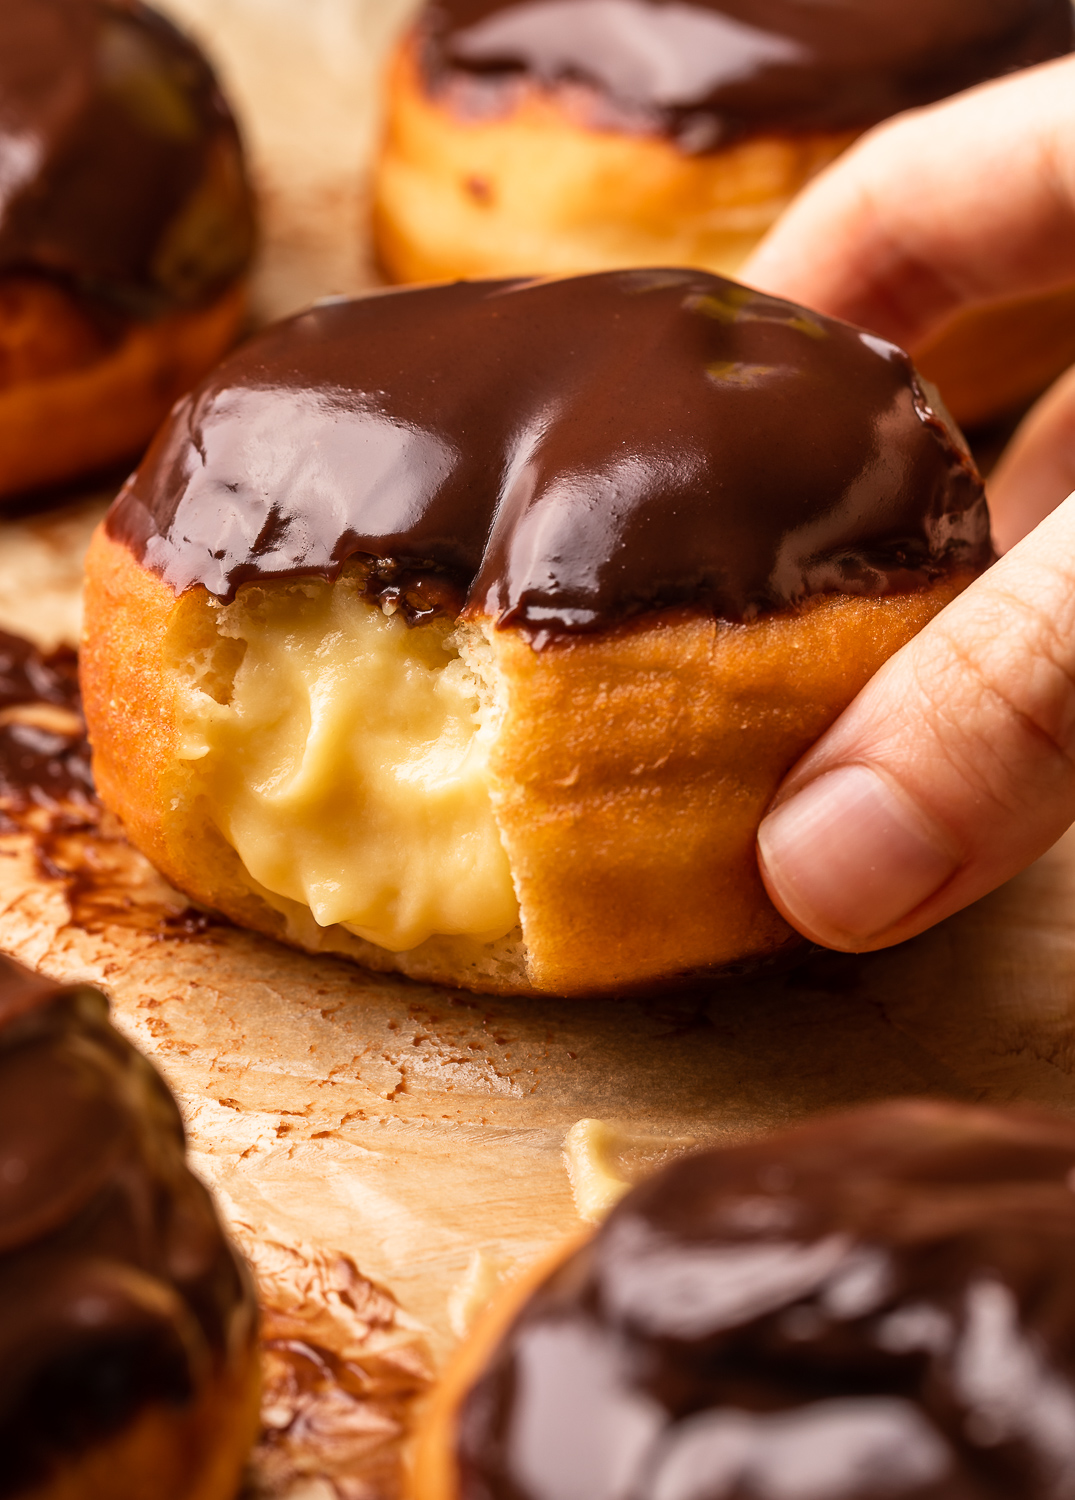 Fluffy Boston Cream Donuts are stuffed with pastry cream filling and dipped in a rich chocolate glaze! Don't let the deep frying scare you off, because this recipe is worth every step. And so much better than anything you'll get from the donut shop.